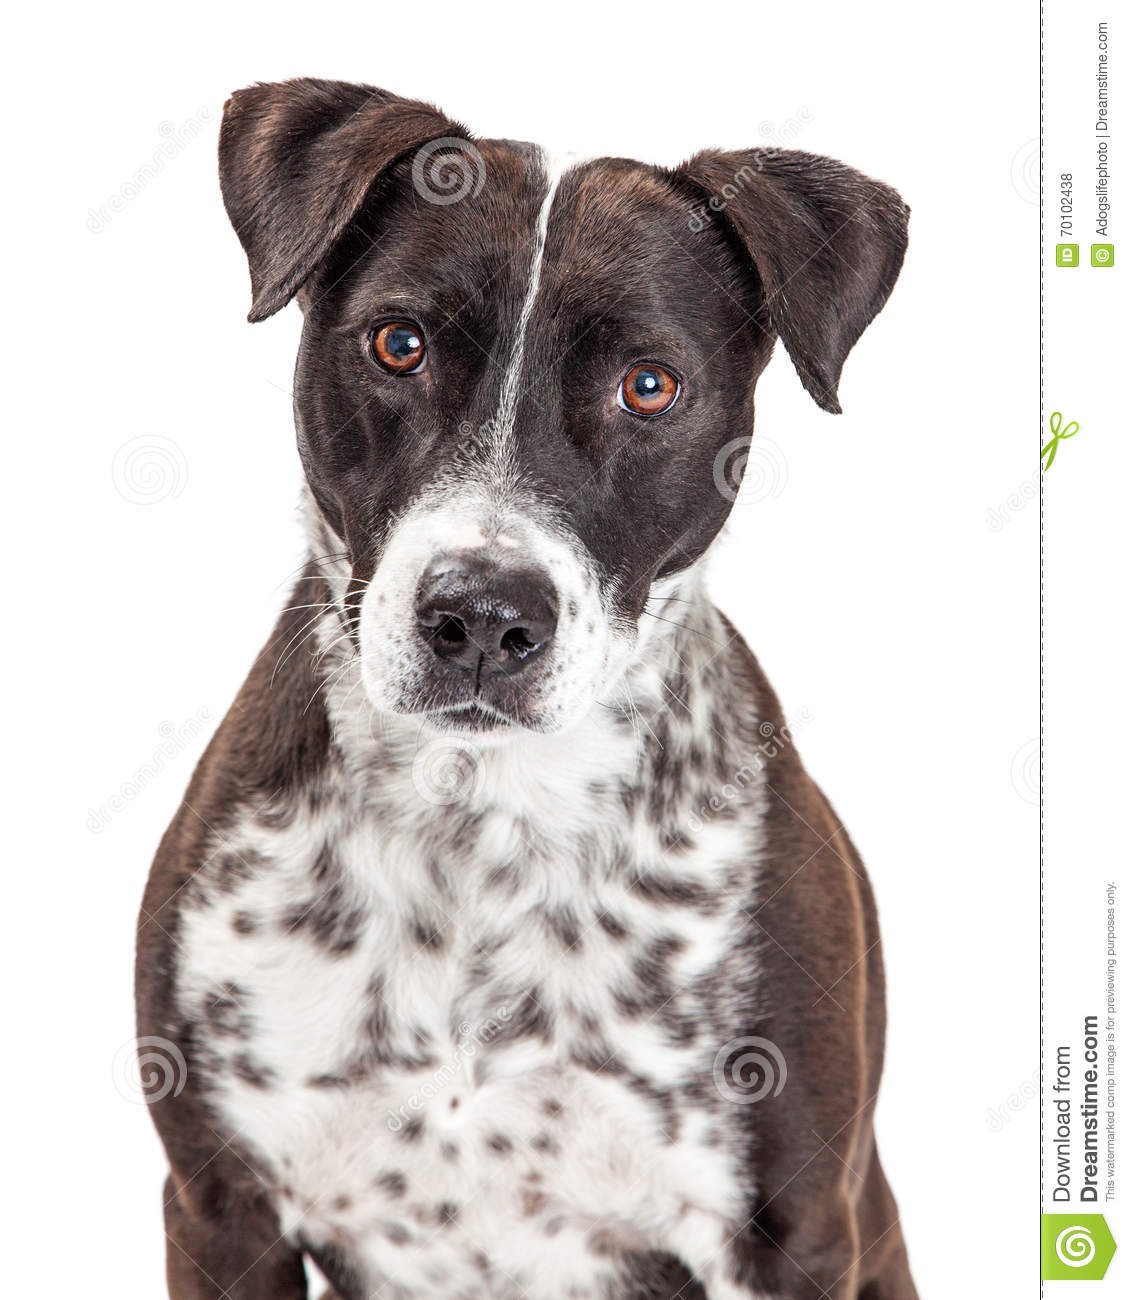 Attentive Mixed Breed Spotted Dog Stock Images - 16 Photos   1130 x 1300 jpeg 145kB